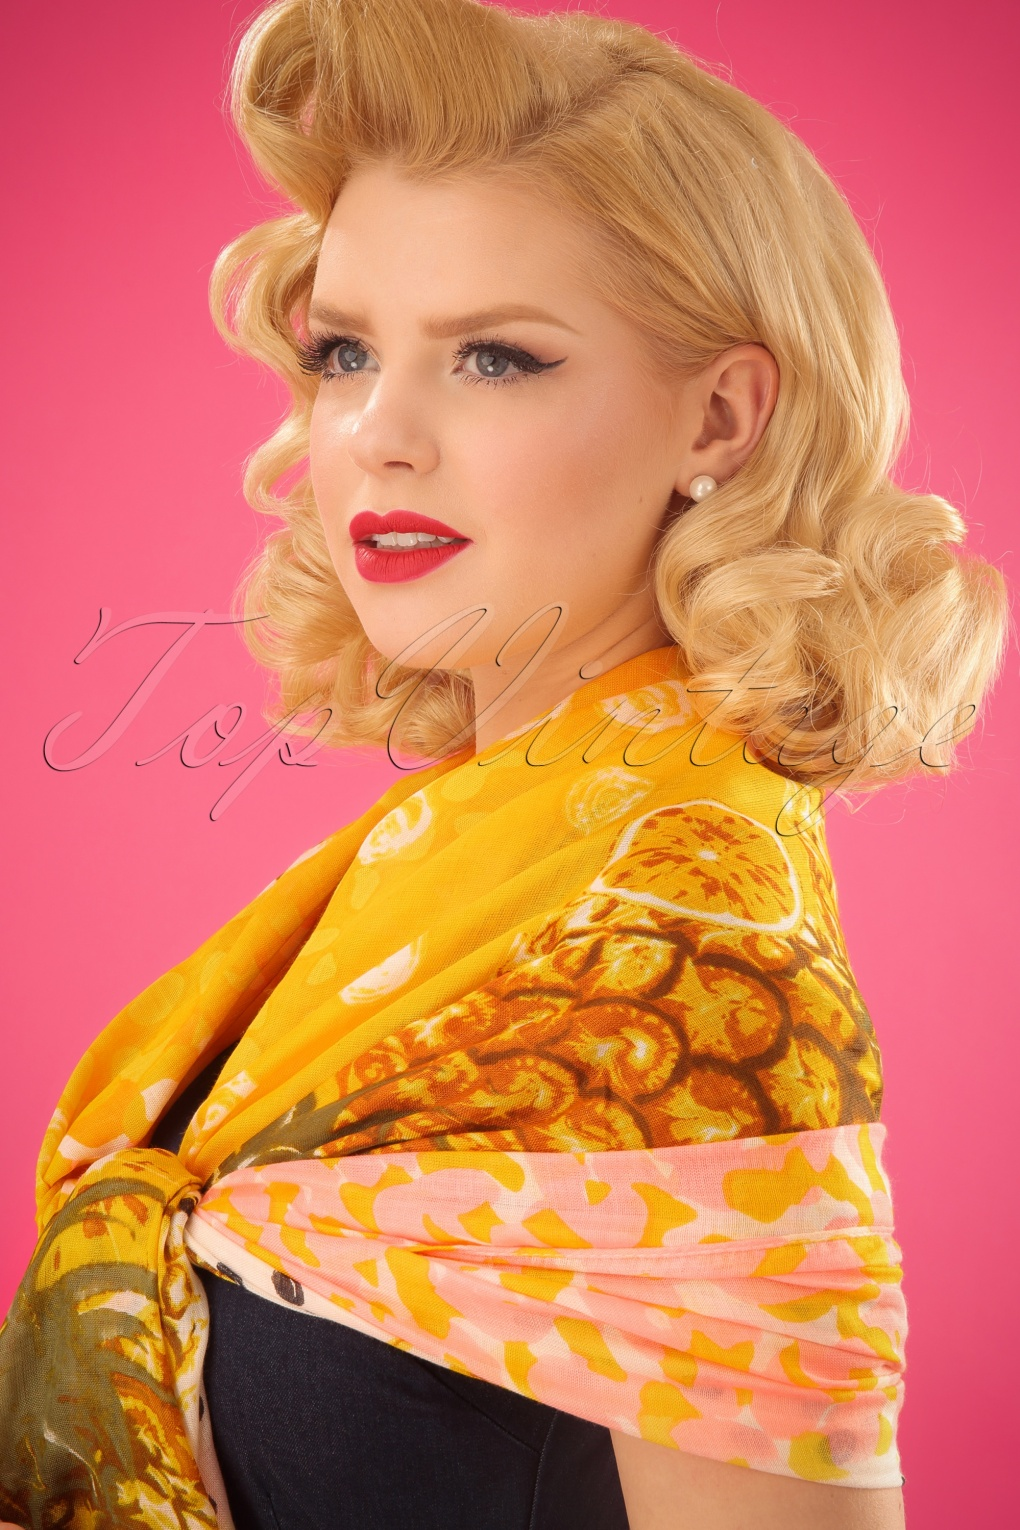 Vintage Scarf Styles -1920s to 1960s 70s Tropical Pineapple Scarf in Yellow £21.86 AT vintagedancer.com